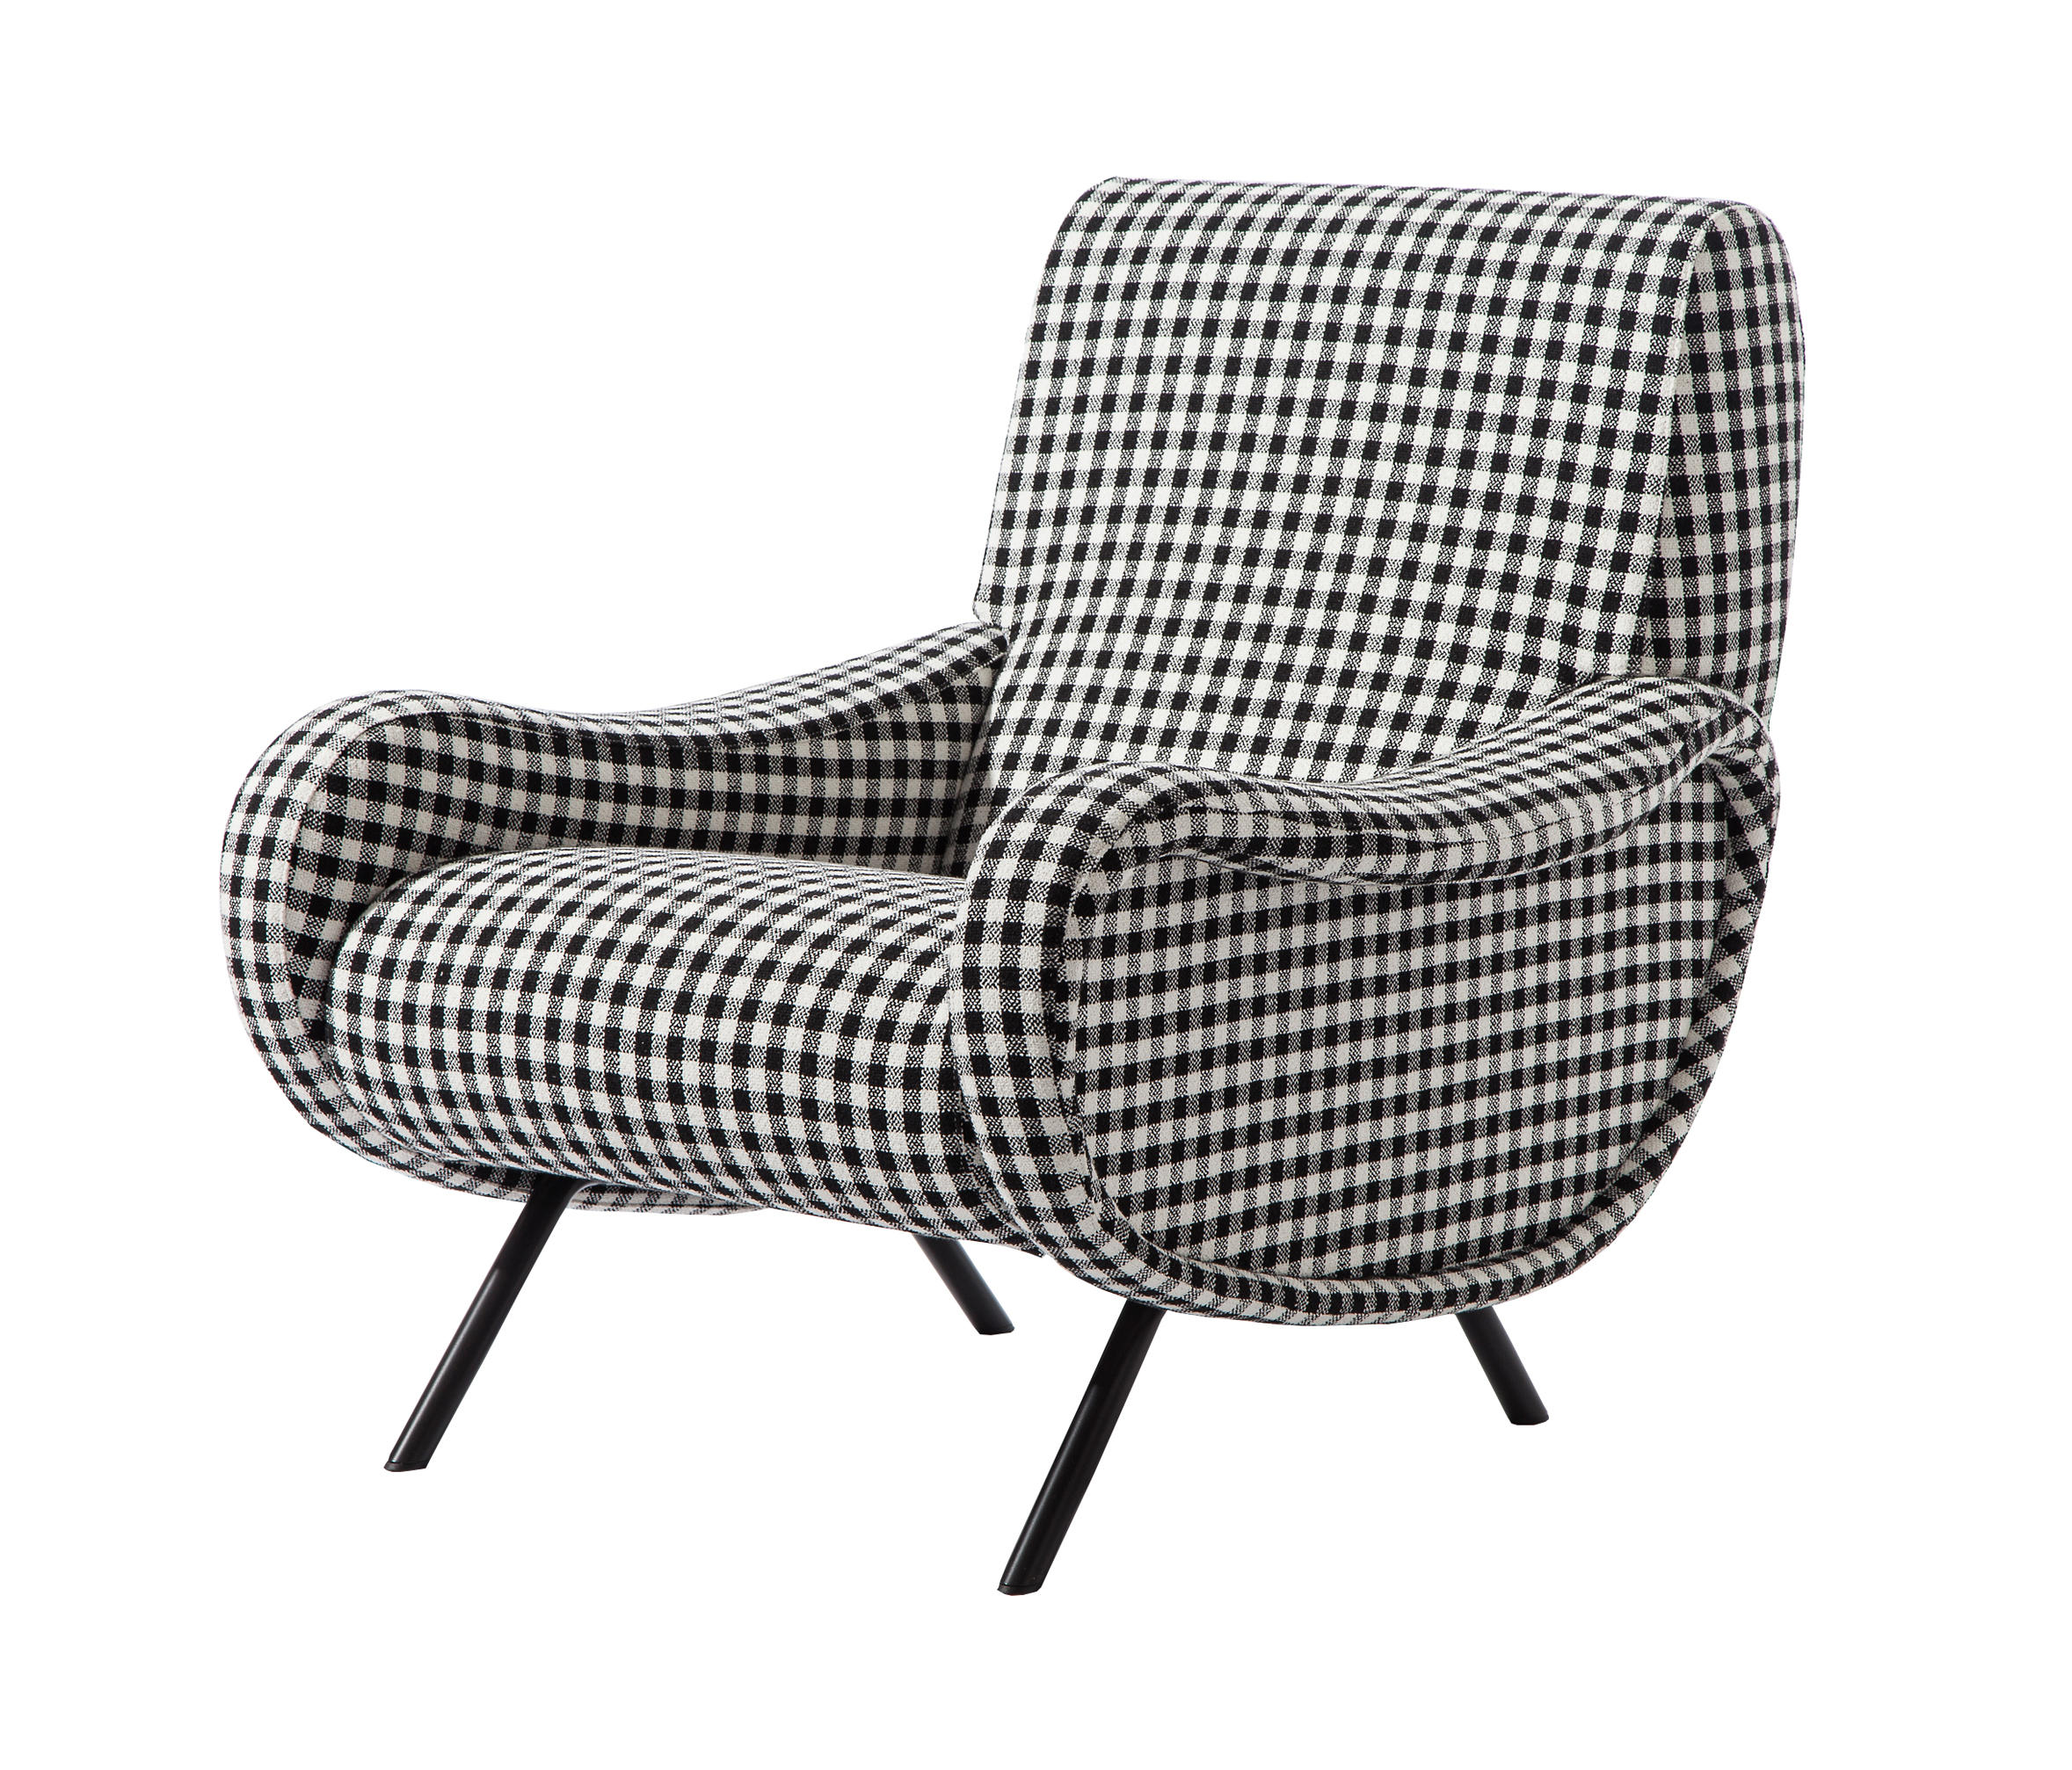 720 LADY - Poltrone Cassina | Architonic